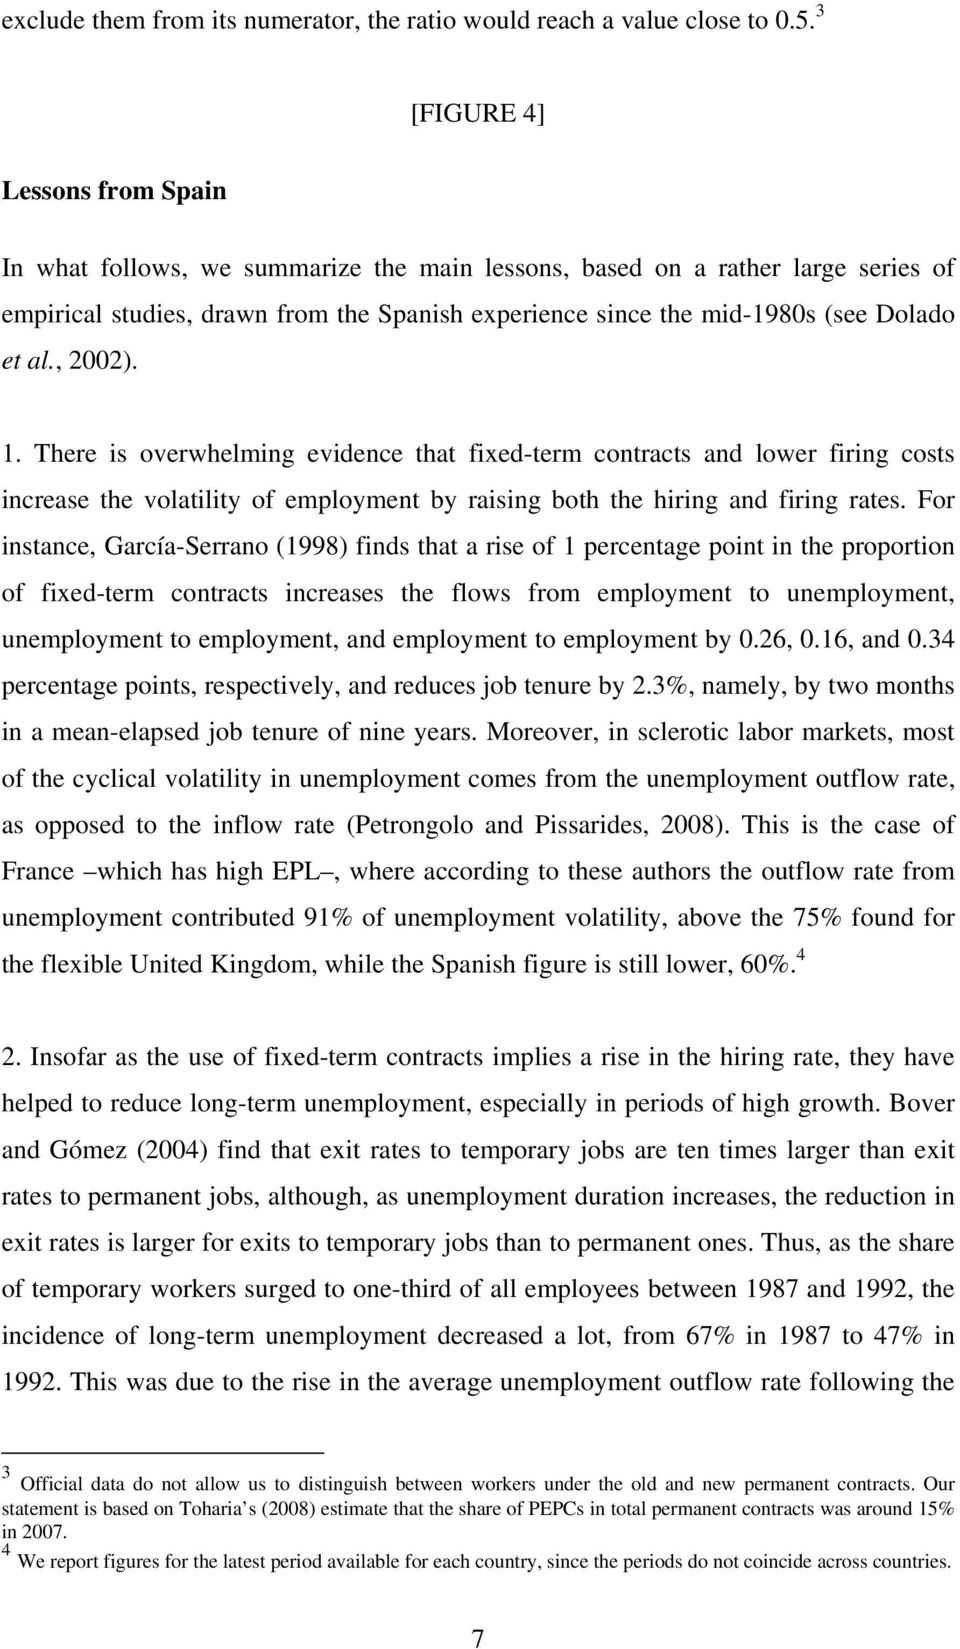 et al., 2002). 1. There is overwhelming evidence that fixed-term contracts and lower firing costs increase the volatility of employment by raising both the hiring and firing rates.